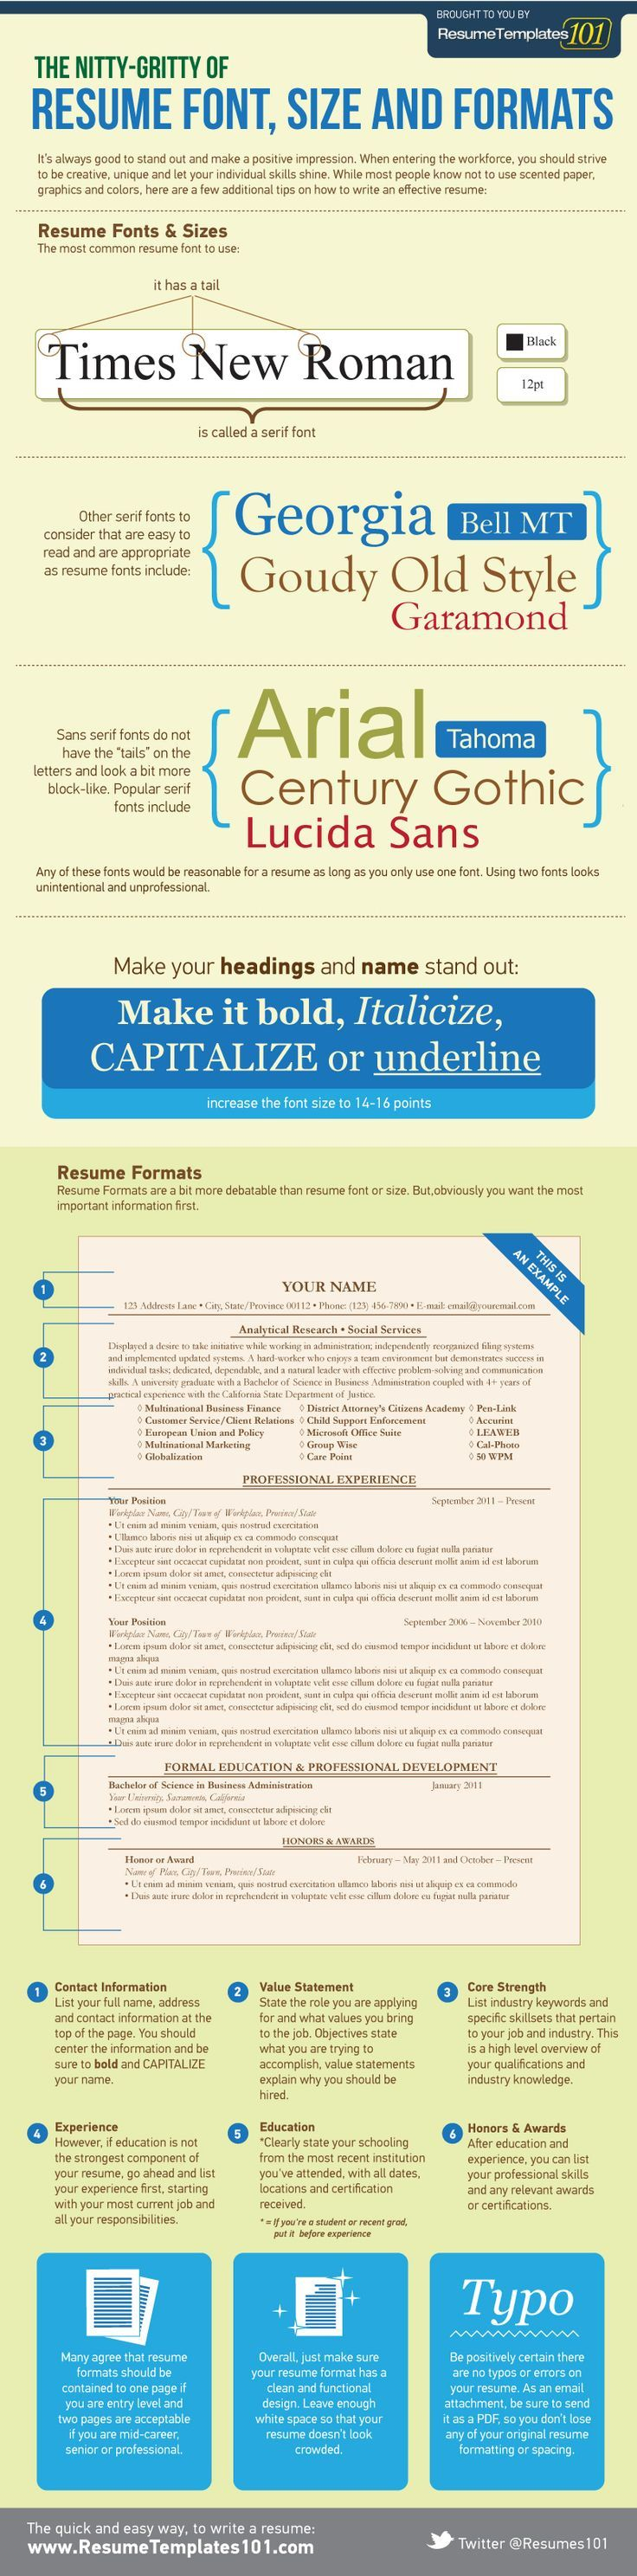 Best Fonts And Proper Font Size For Resumes Fonts Business